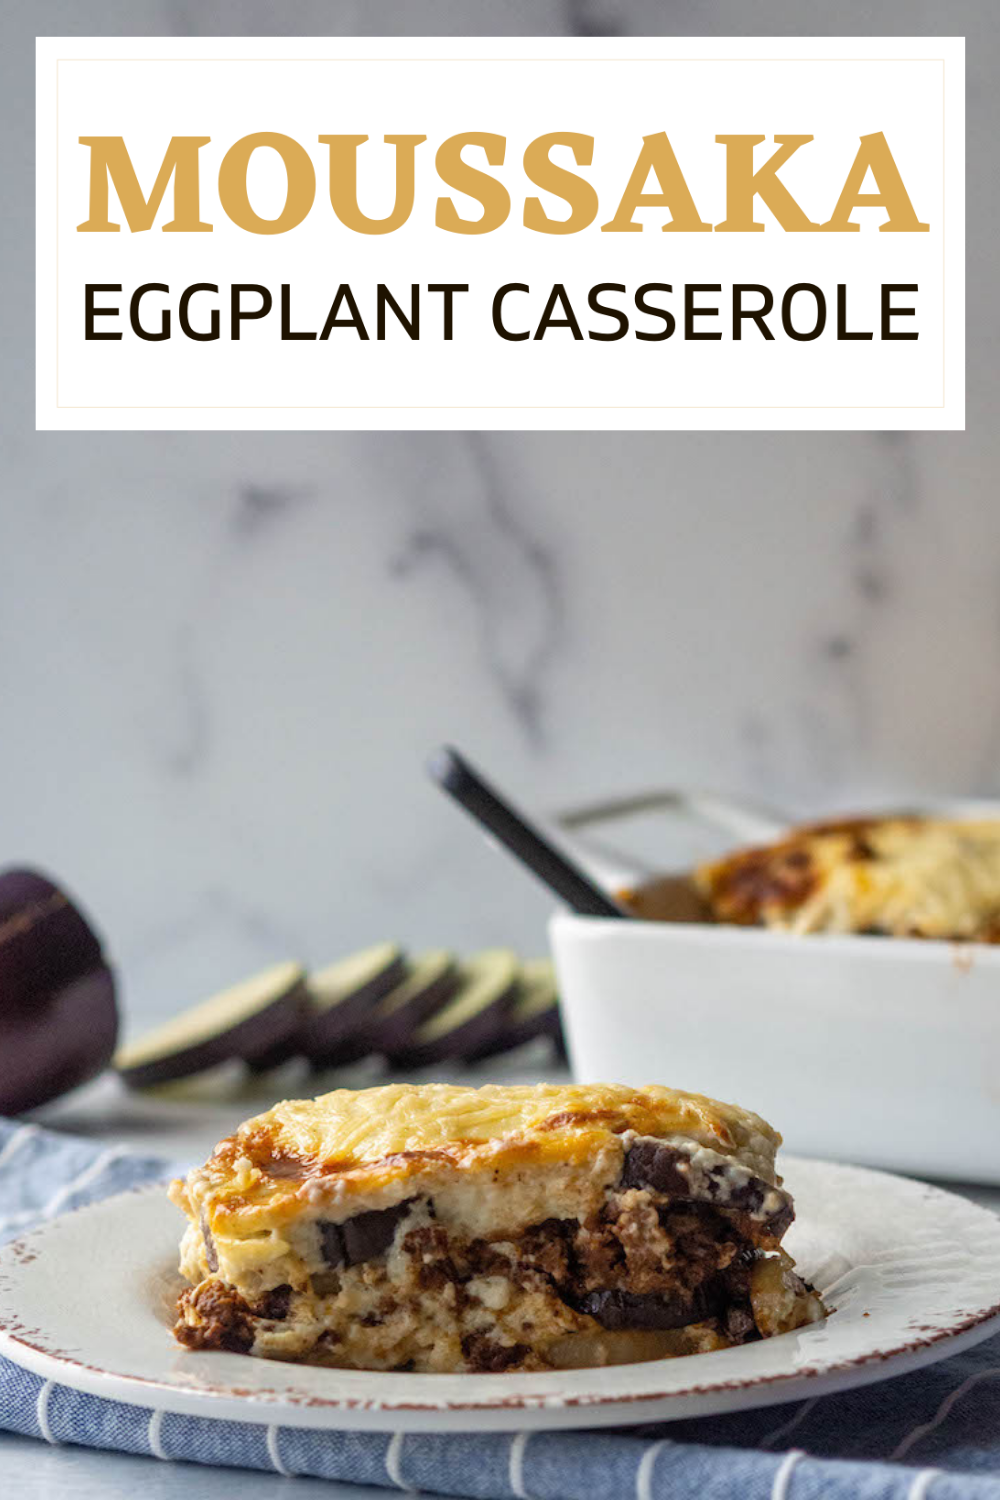 Moussaka - Eggplant Casserole is one of the most famous Greek dishes. It includes layers of fried eggplant and potatoes with a hearty meat sauce covered with a thick layer of Bechemel Sauce that is allowed to get golden brown as it cooks. Every family has their own version of Moussaka and ours is no exception. via @CookLikeaGreek